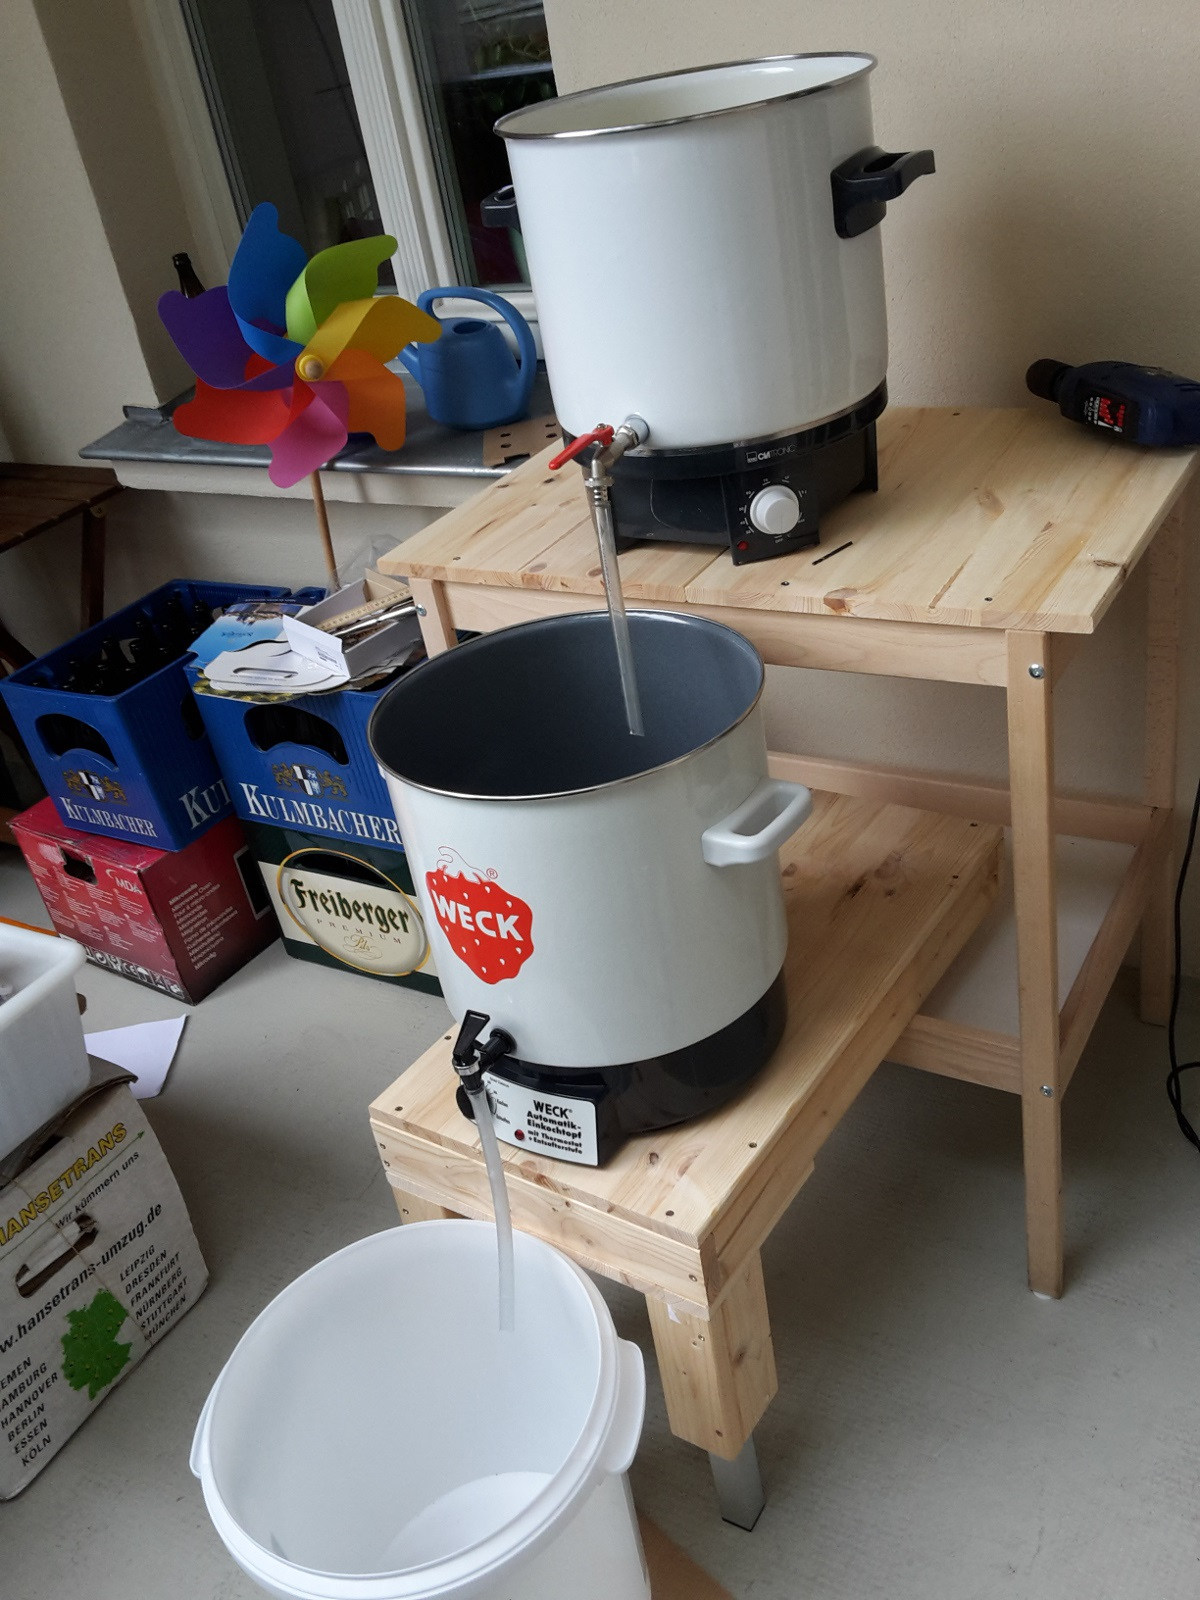 Hansetrans Dresden Show Your Diy Projects Page 3 Make Beer At Home Forums